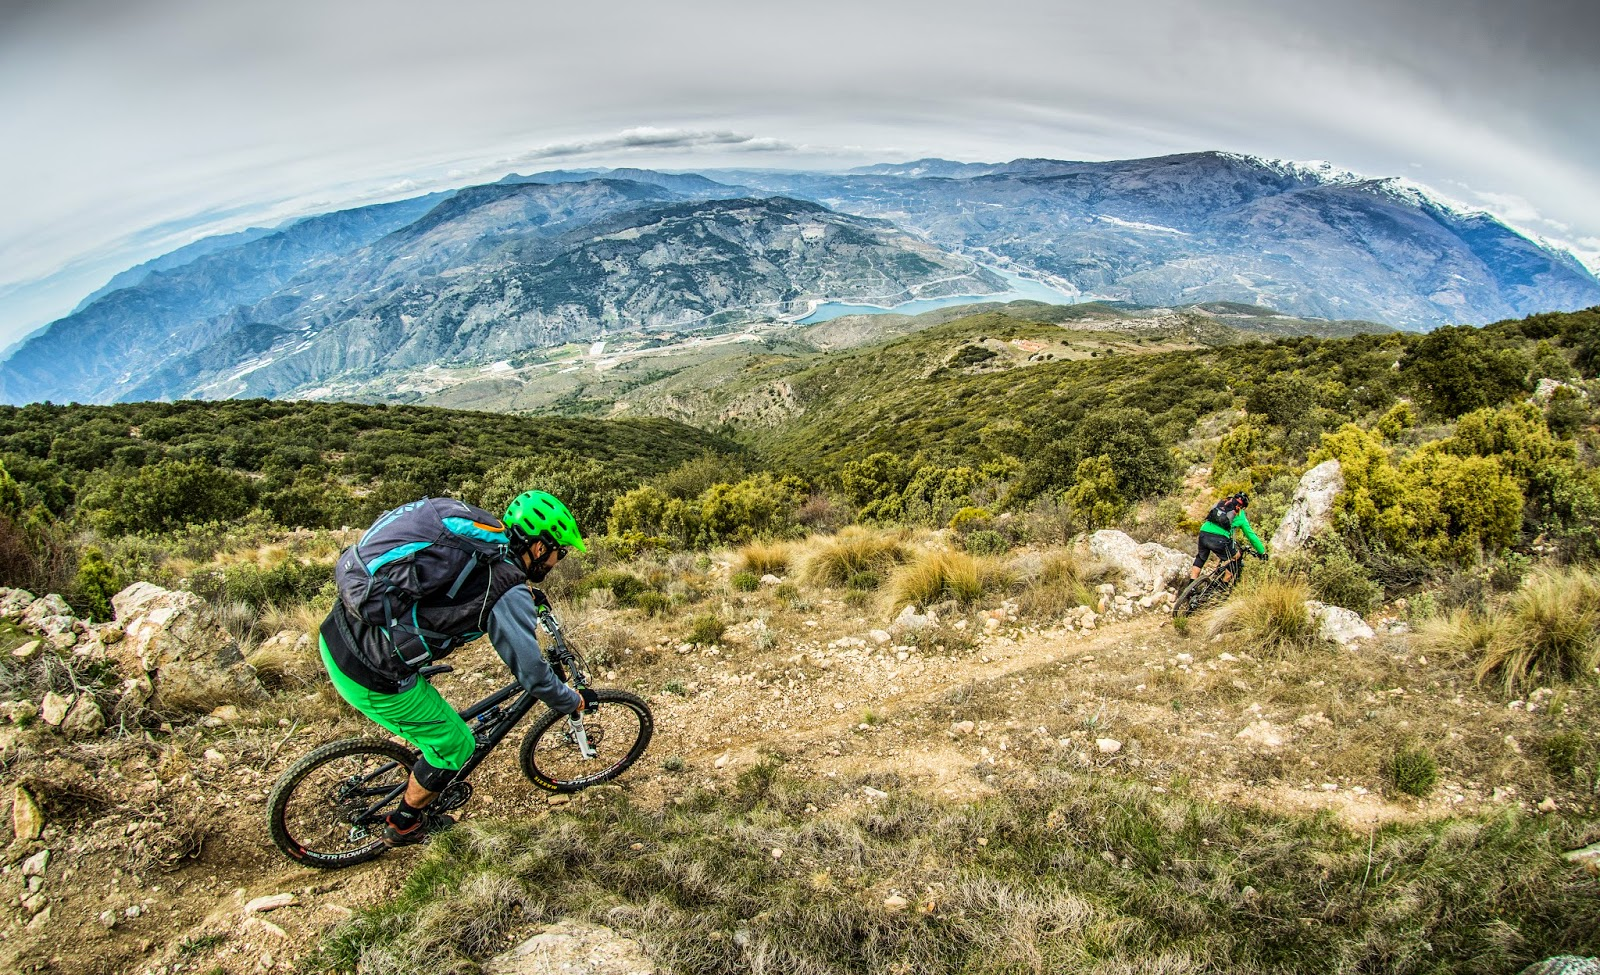 Mountain Bike en Sierra Nevada, viajes y turismo